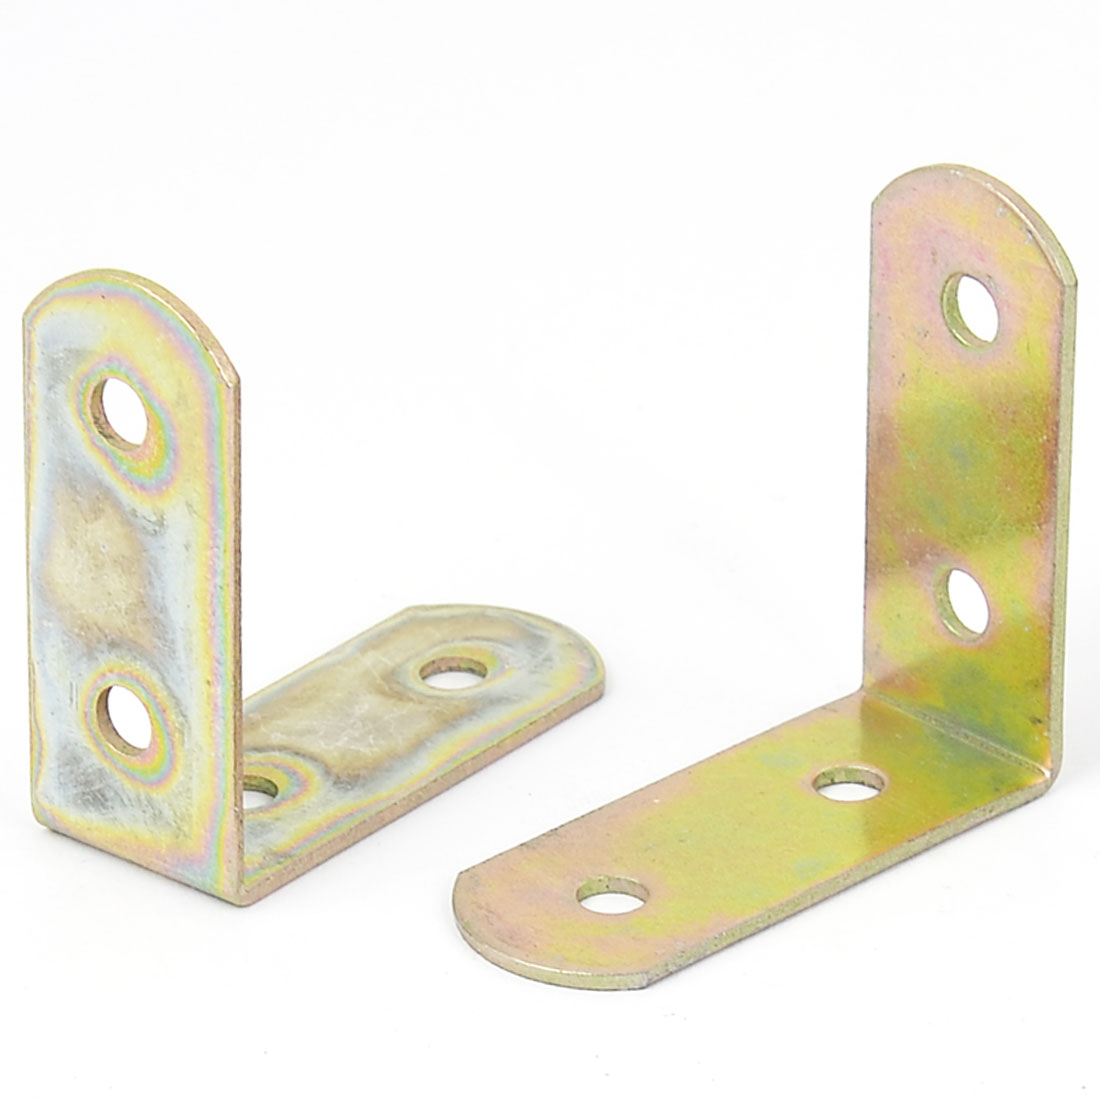 Metal L Shape 4 Hole Round End 90 Degree Corner Brace Angle Brackets 46mm 2pcs